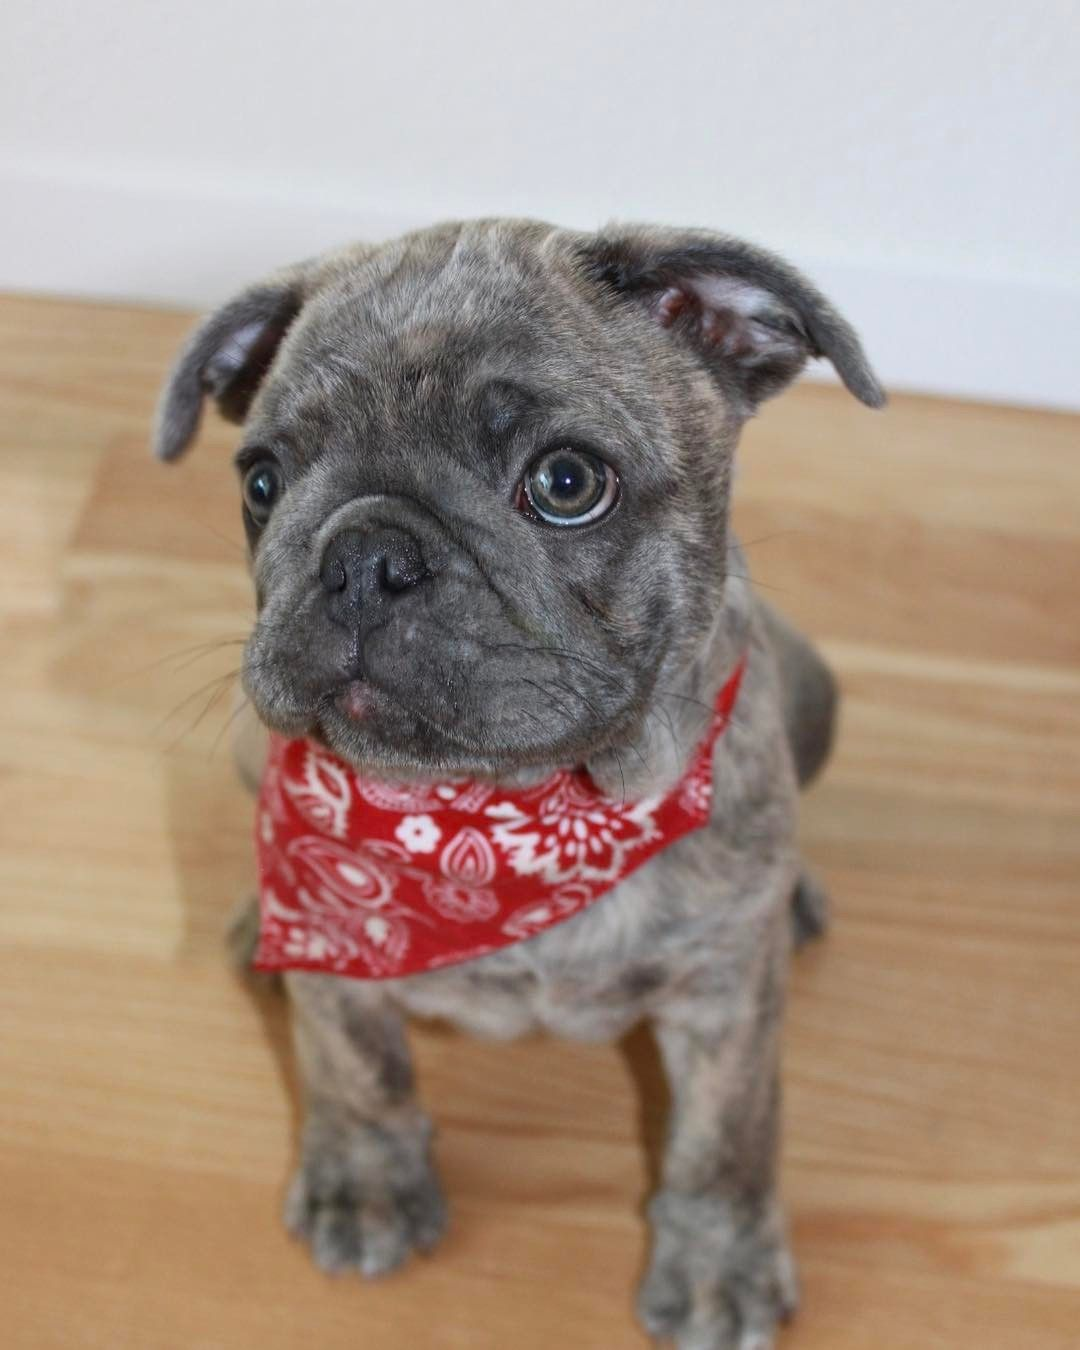 This Is A Frug Puppy A French Bulldog And Pug Mix Pug Mixed Breeds Pug Mix Pugs And Kisses